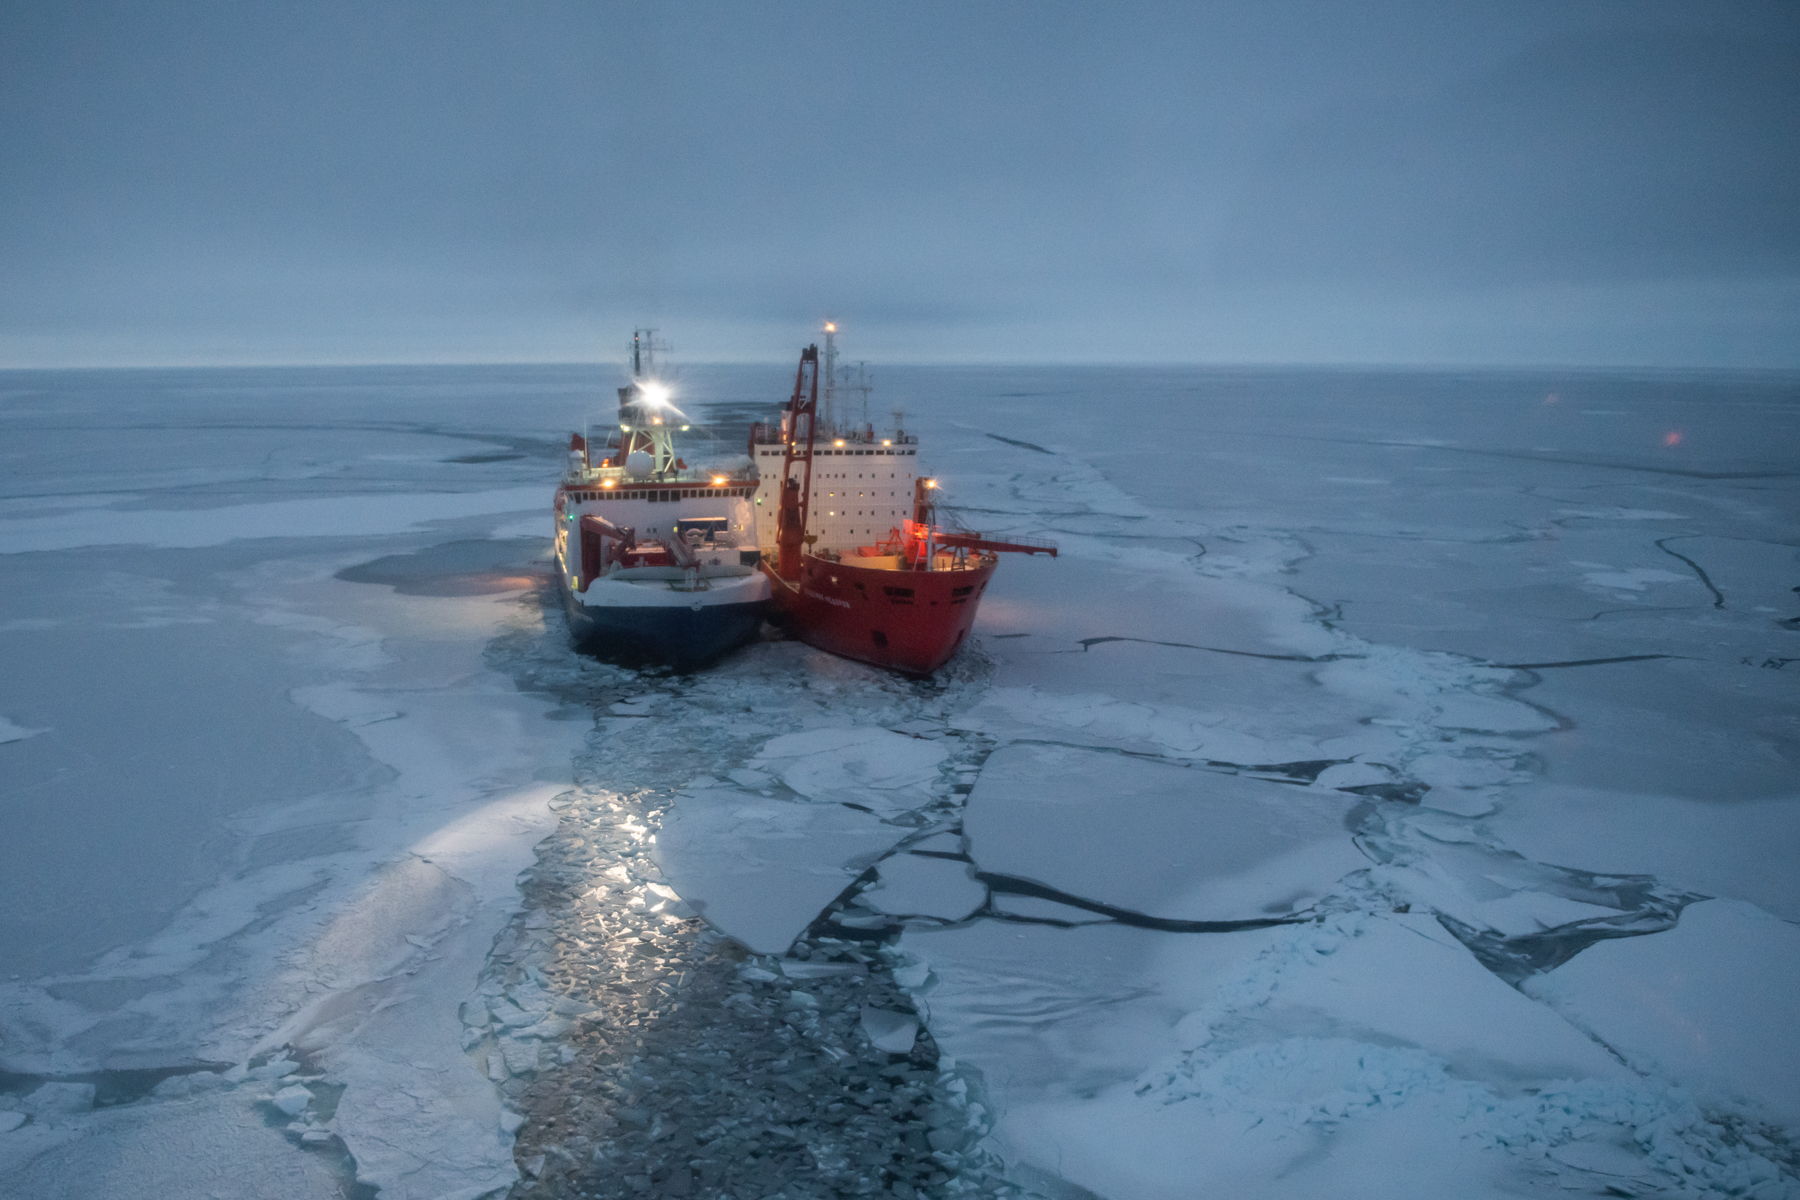 After finding its floe, a drifting Arctic research icebreaker settles in for polar night | Nunatsiaq News